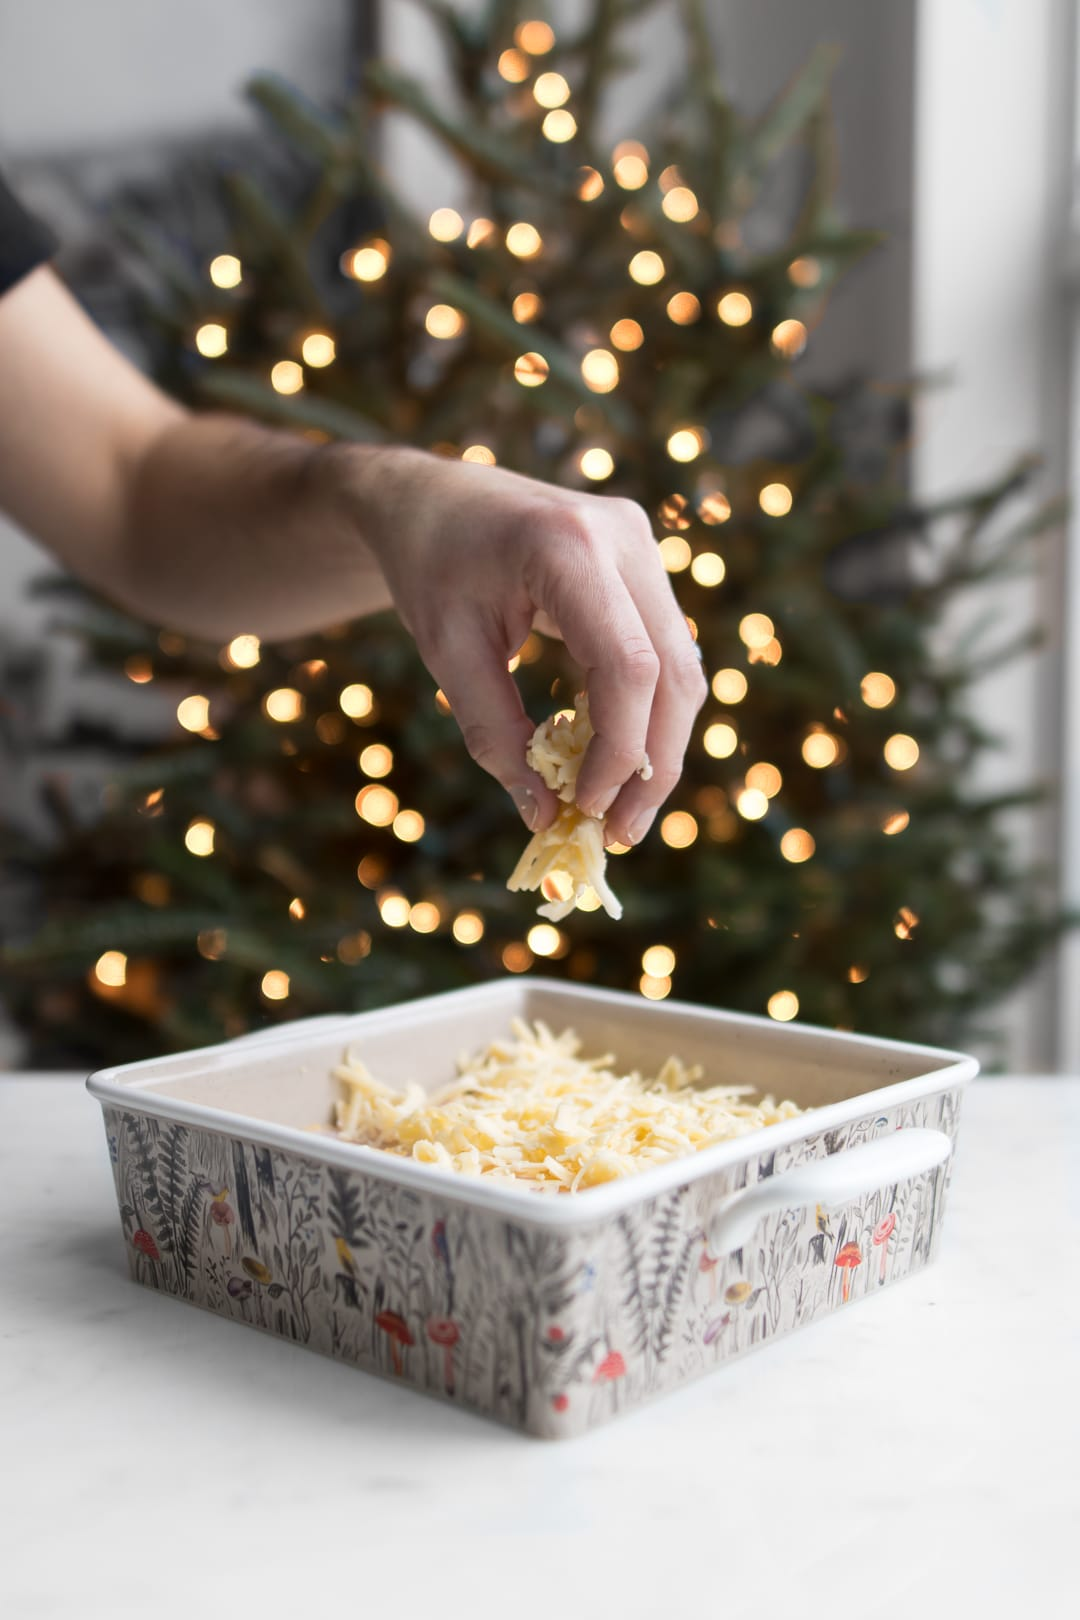 Man's hand sprinkling cheese on breakfast casserole with Christmas tree in the background